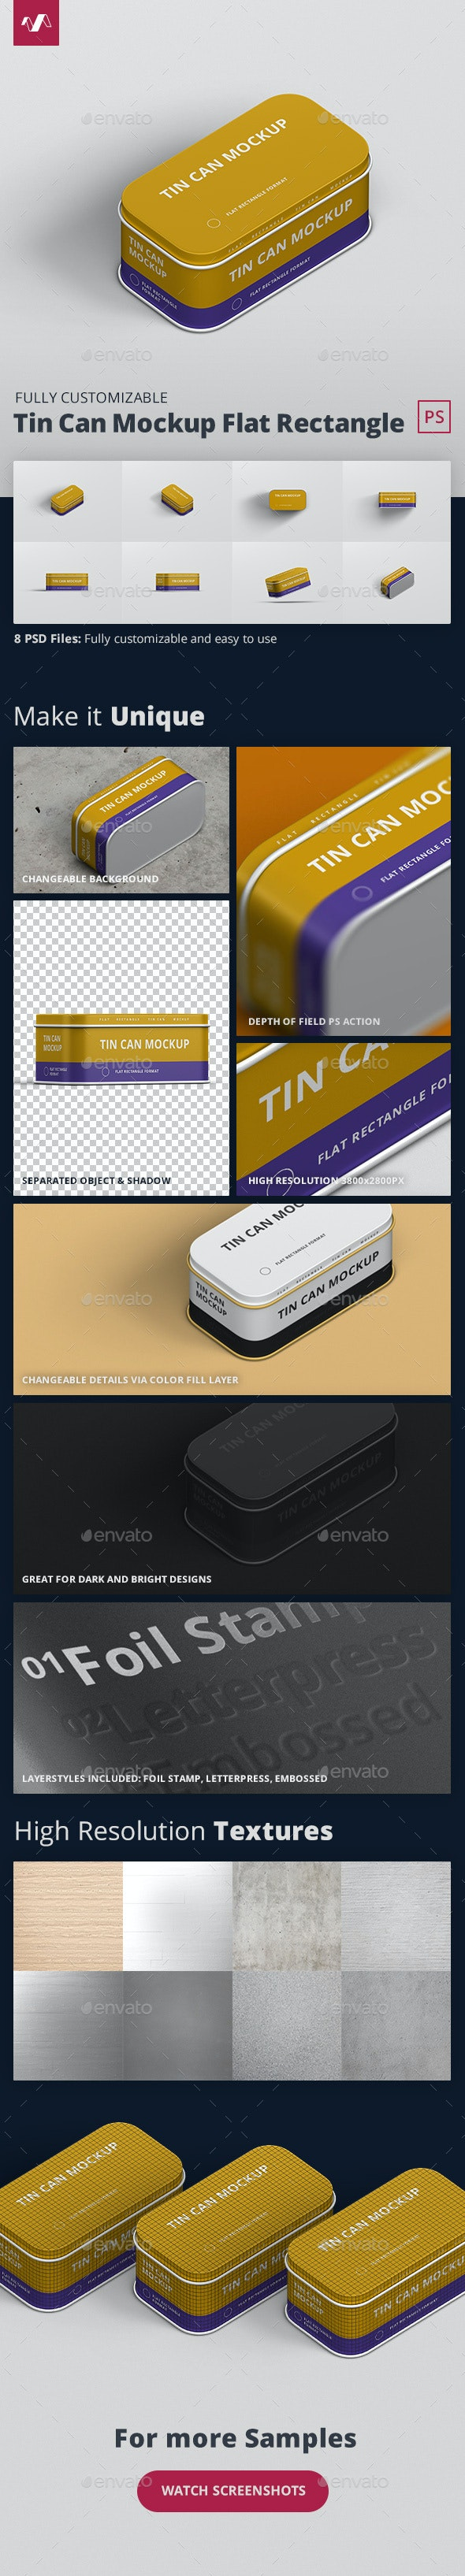 Tin Can Mockup Flat Rectangle - Miscellaneous Packaging